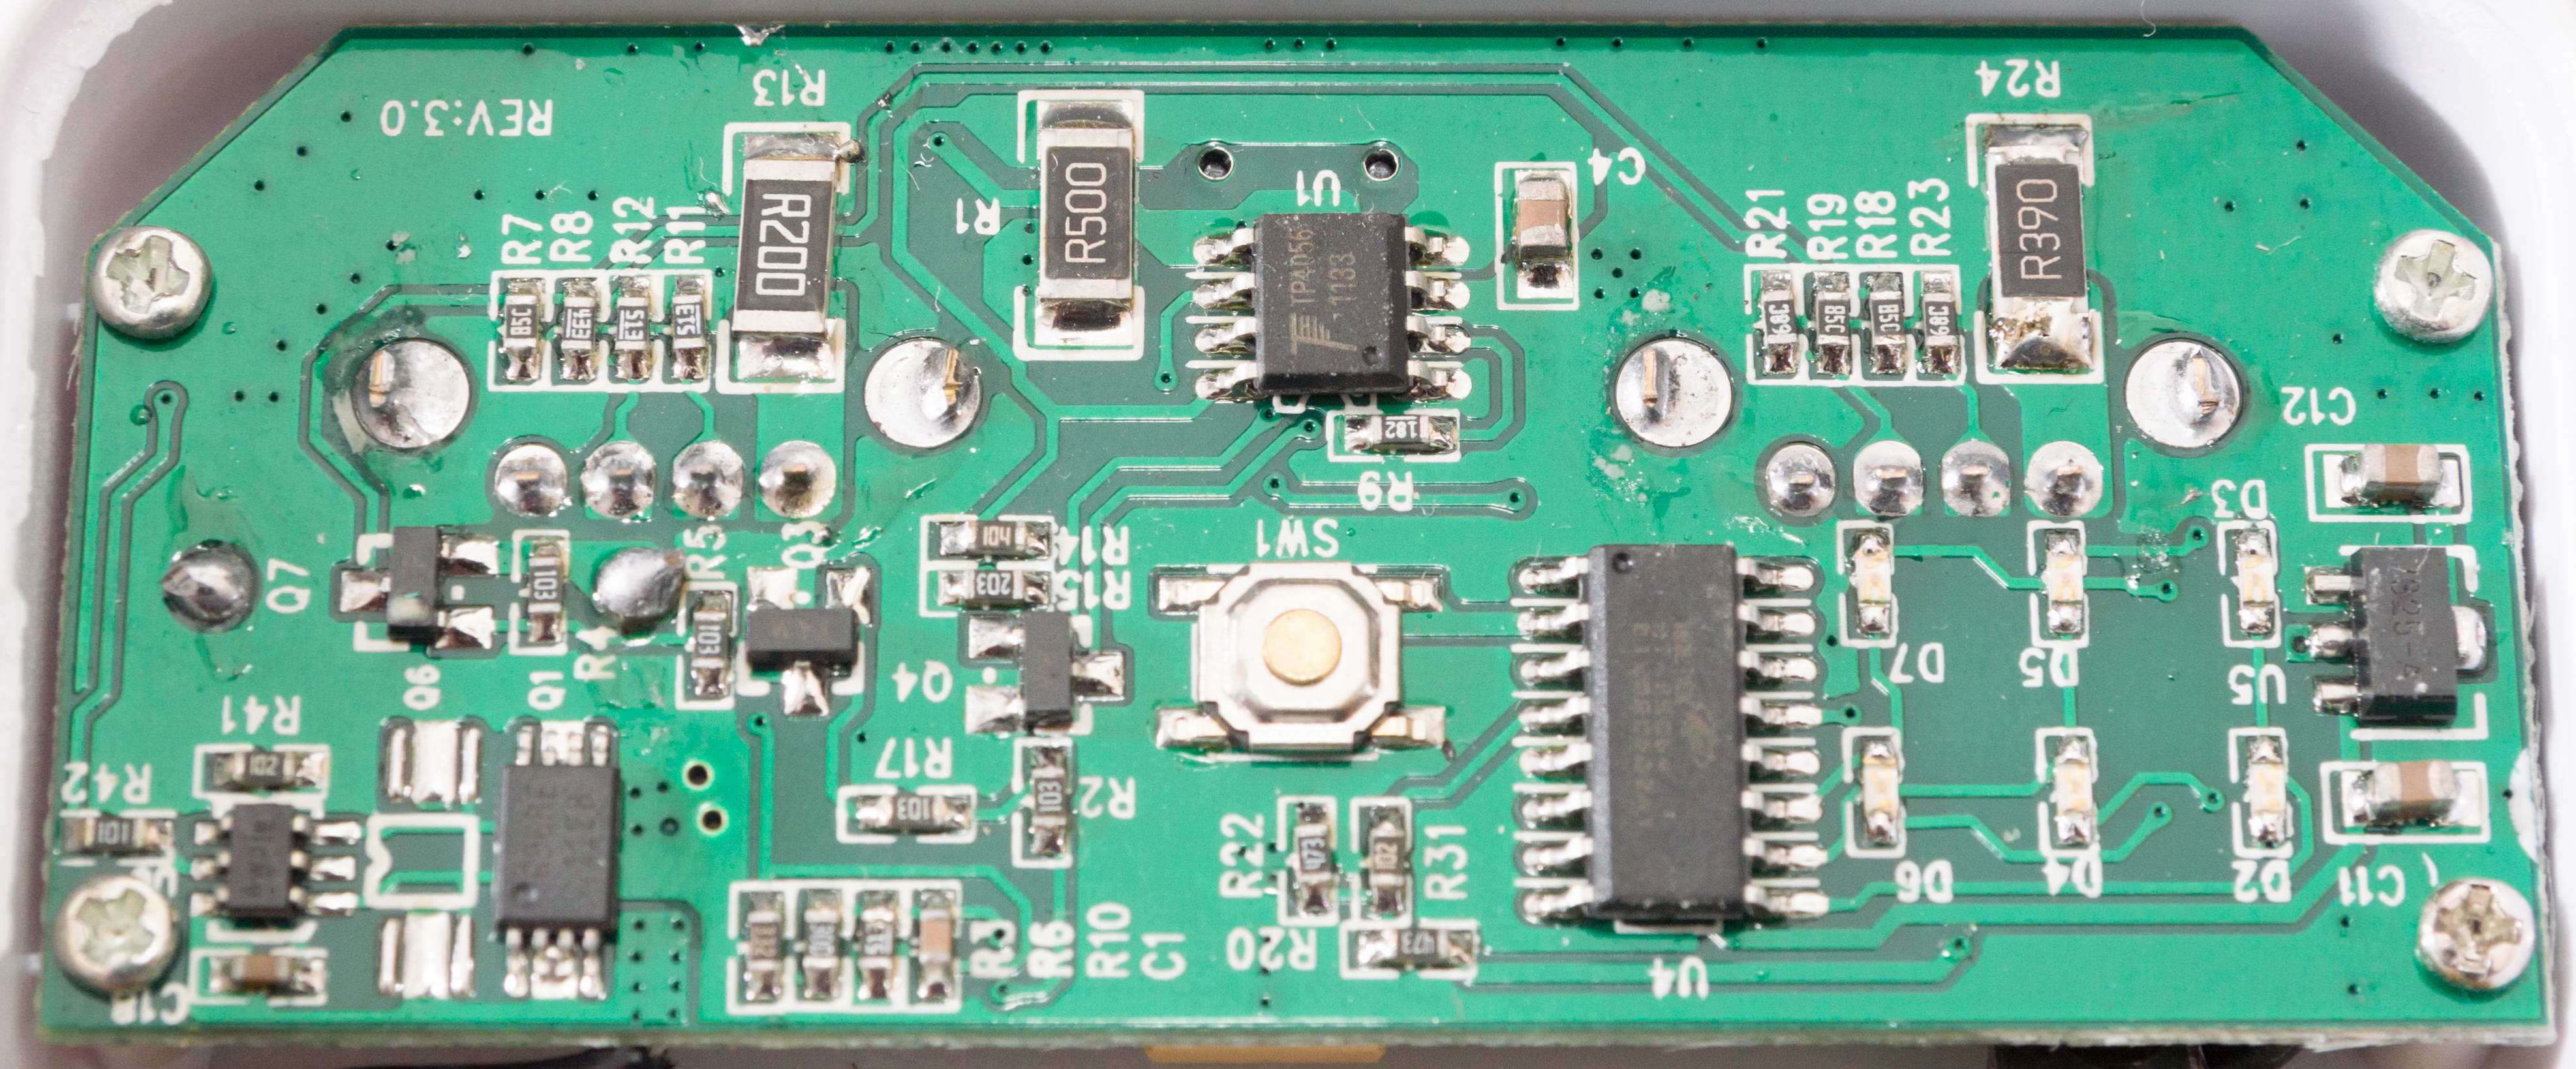 Teardown Unbranded 5000mah Usb Charger Pack Power Bank Goughs Lithiumion Battery One Schematic We Can Already See U1 Is A Tp4056 1a Standalone Lithium Ion Ic Interestingly If Look At Pin 2 182 Smd Resistor Implying